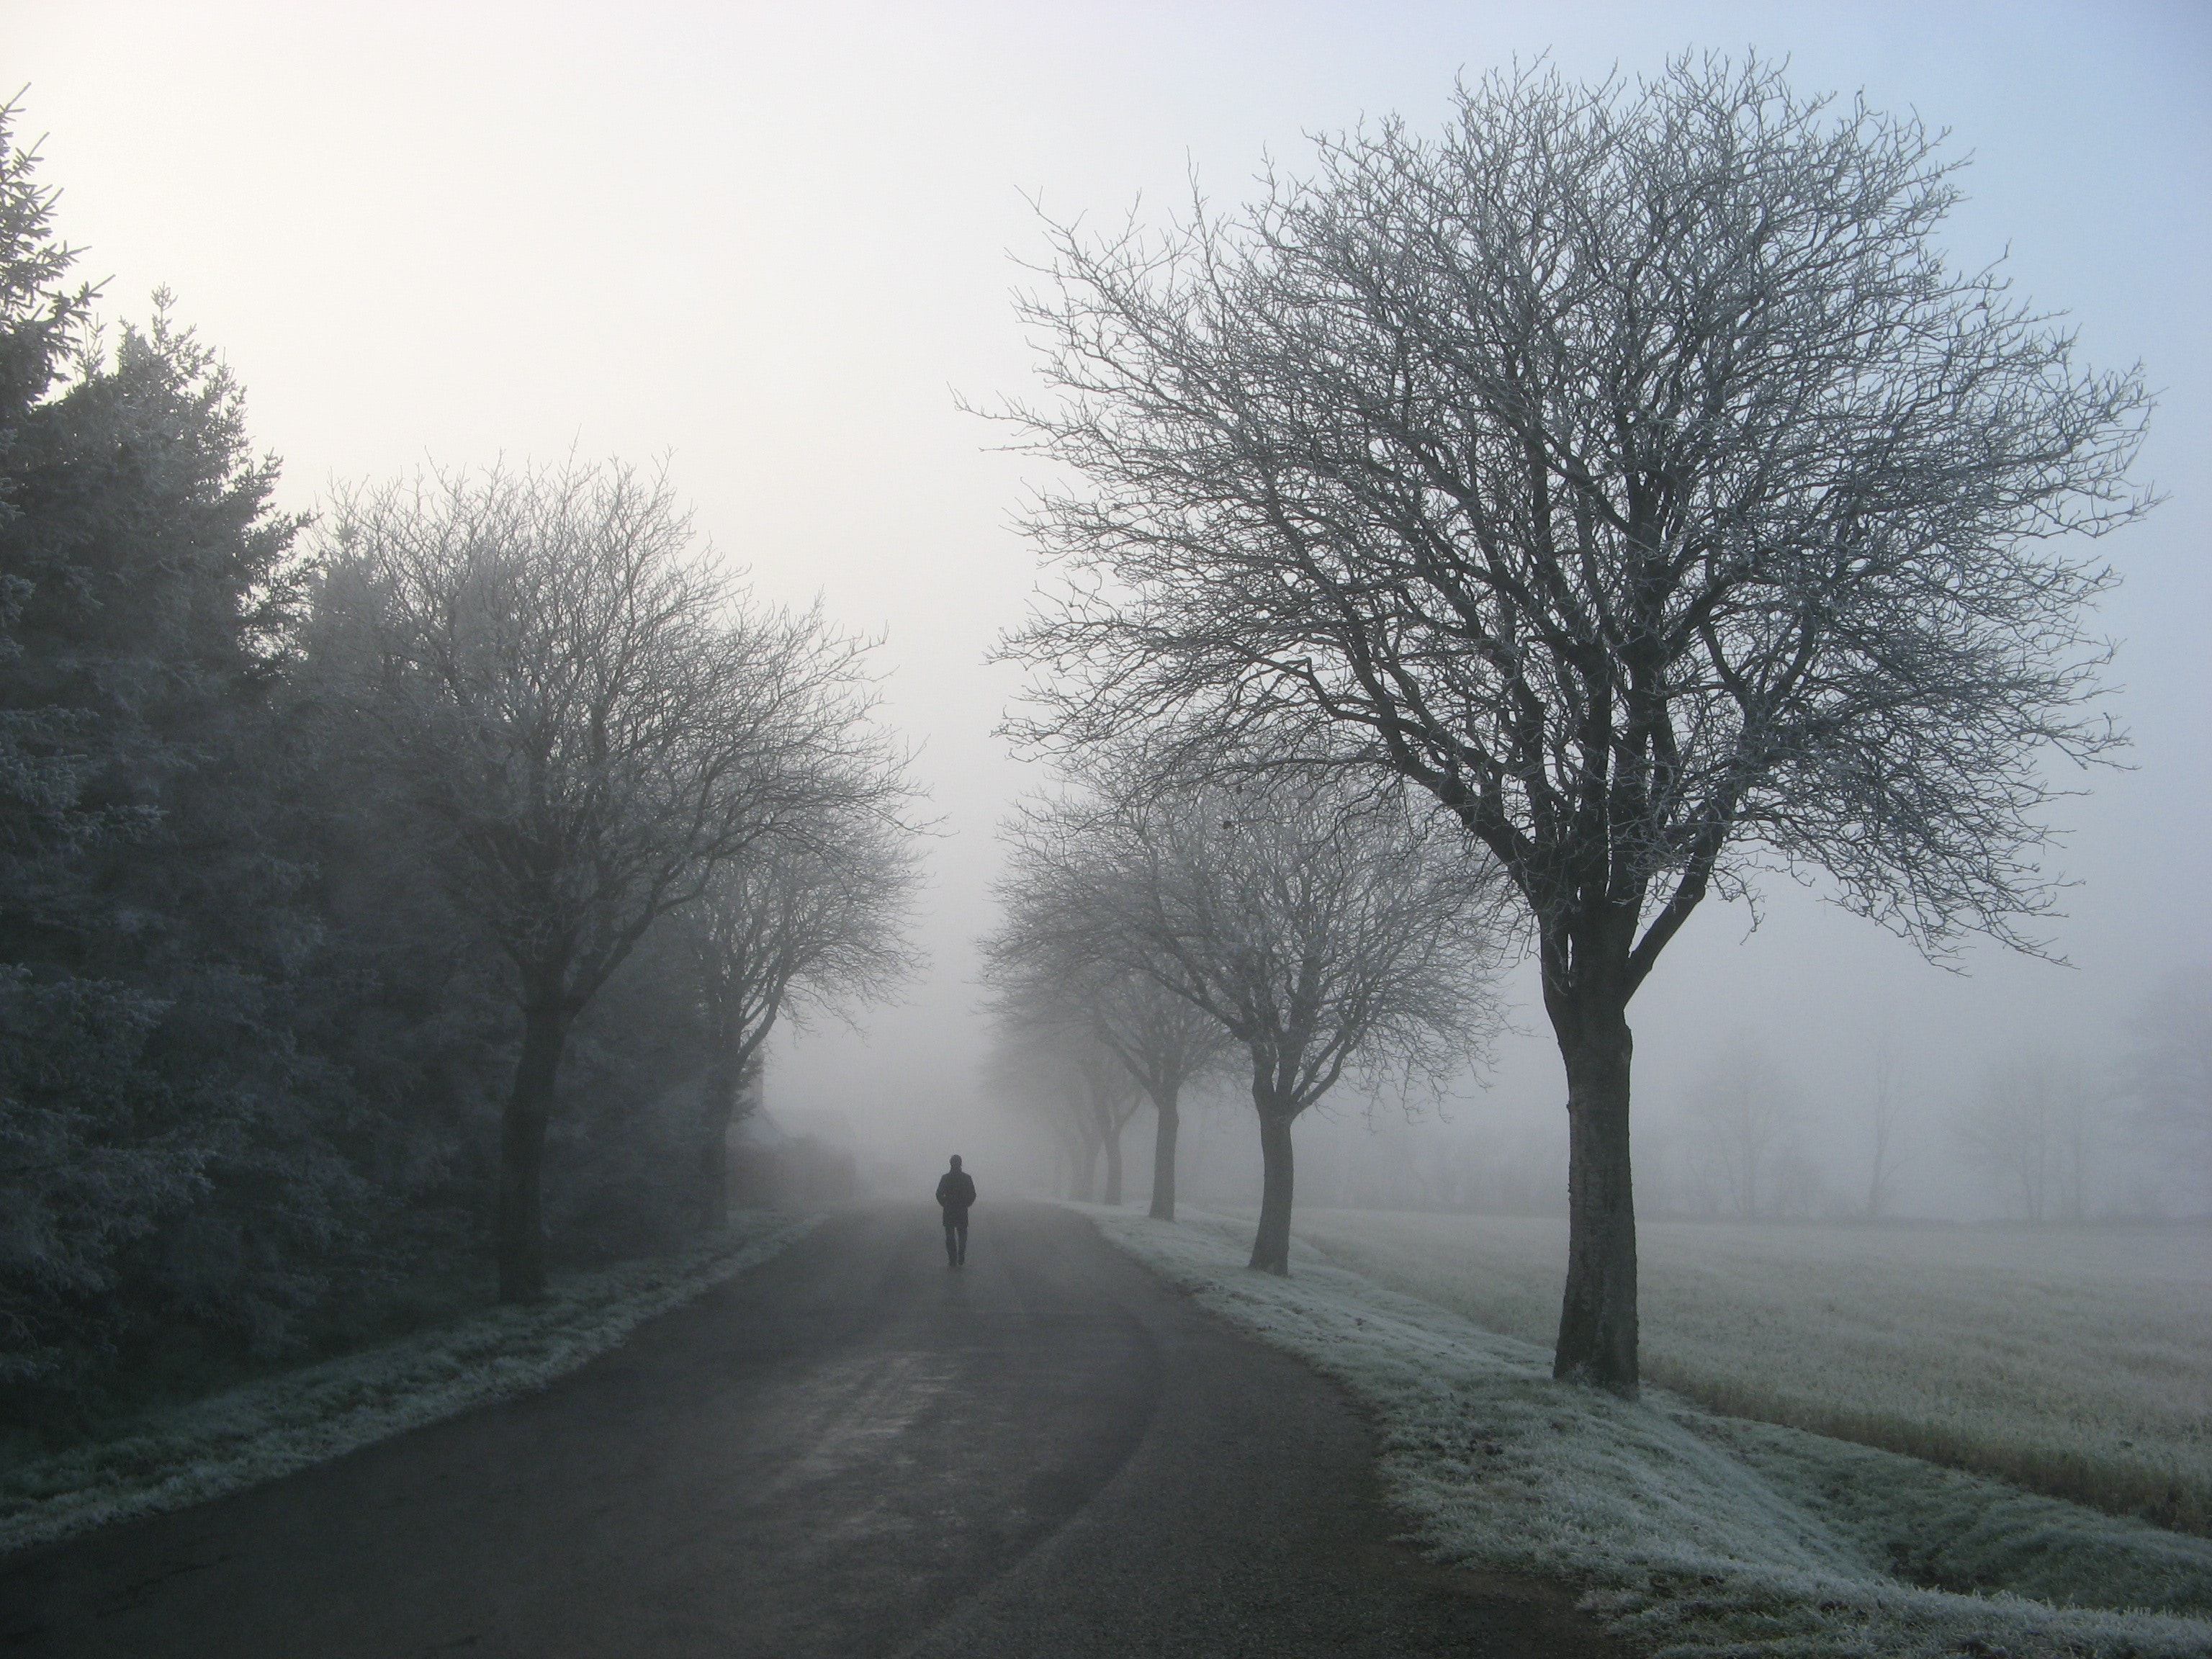 Person walking on road between trees photo